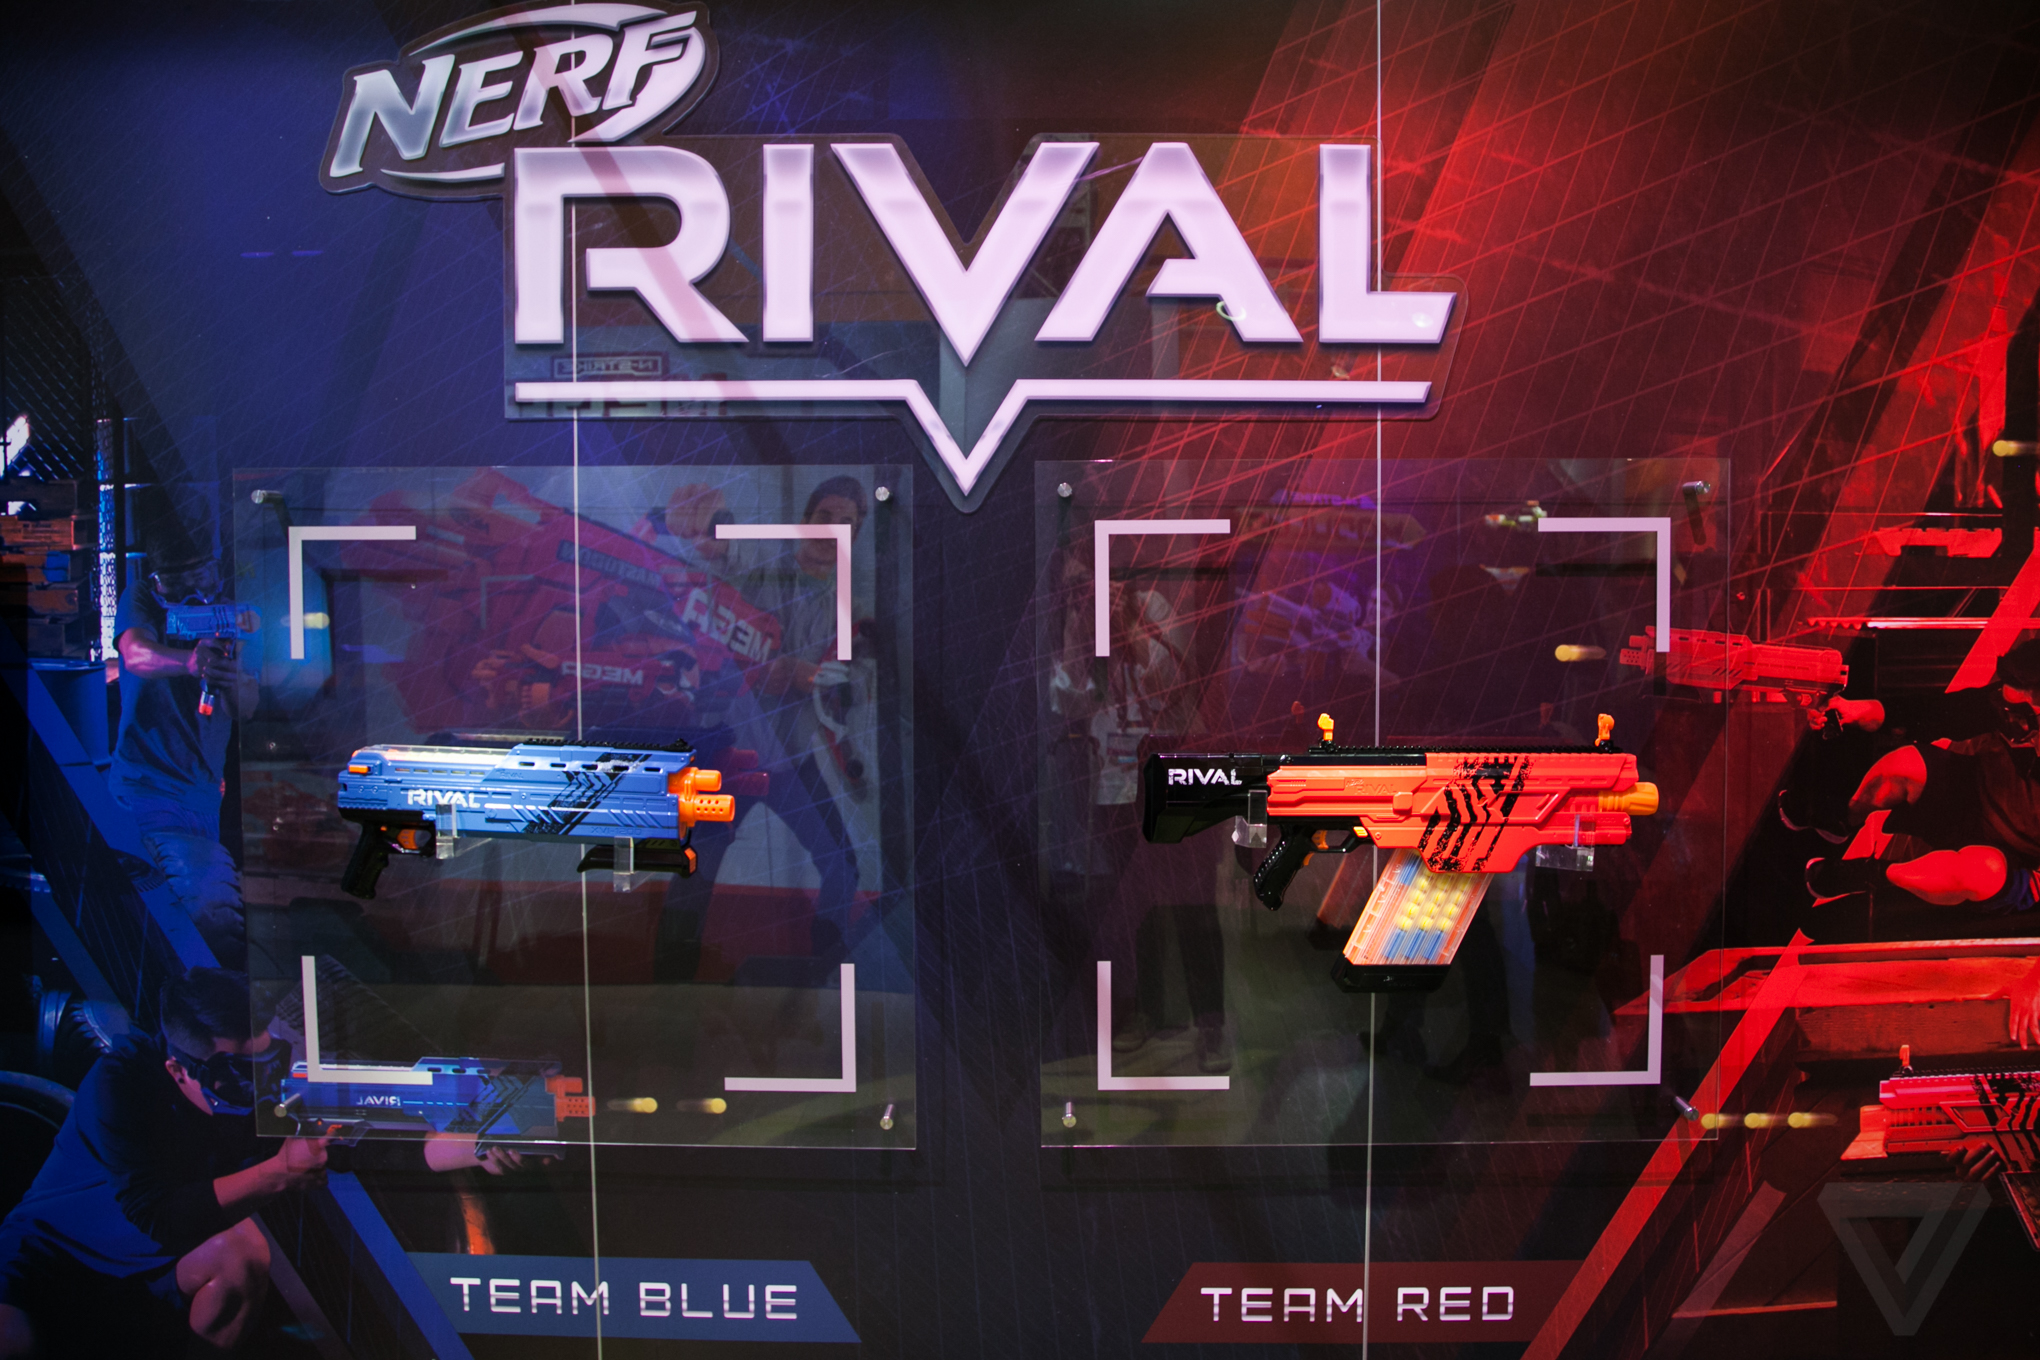 This new Nerf gun shoots at 68 mph - The Verge